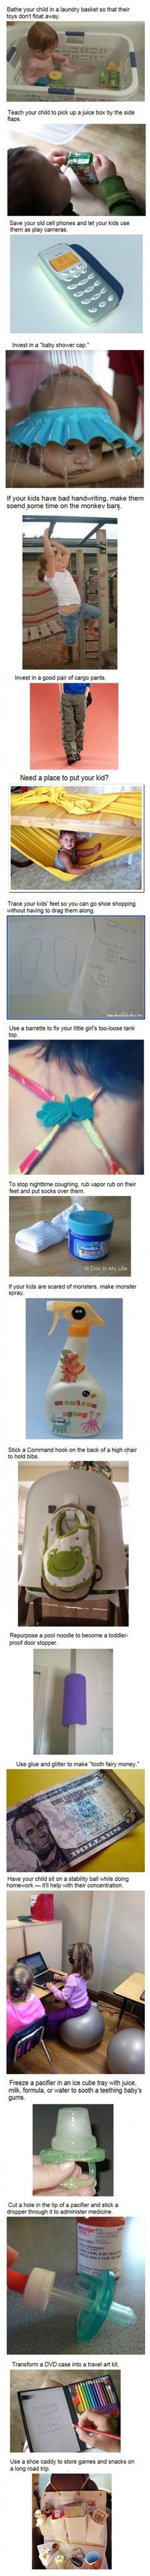 Parenting, doing it right…